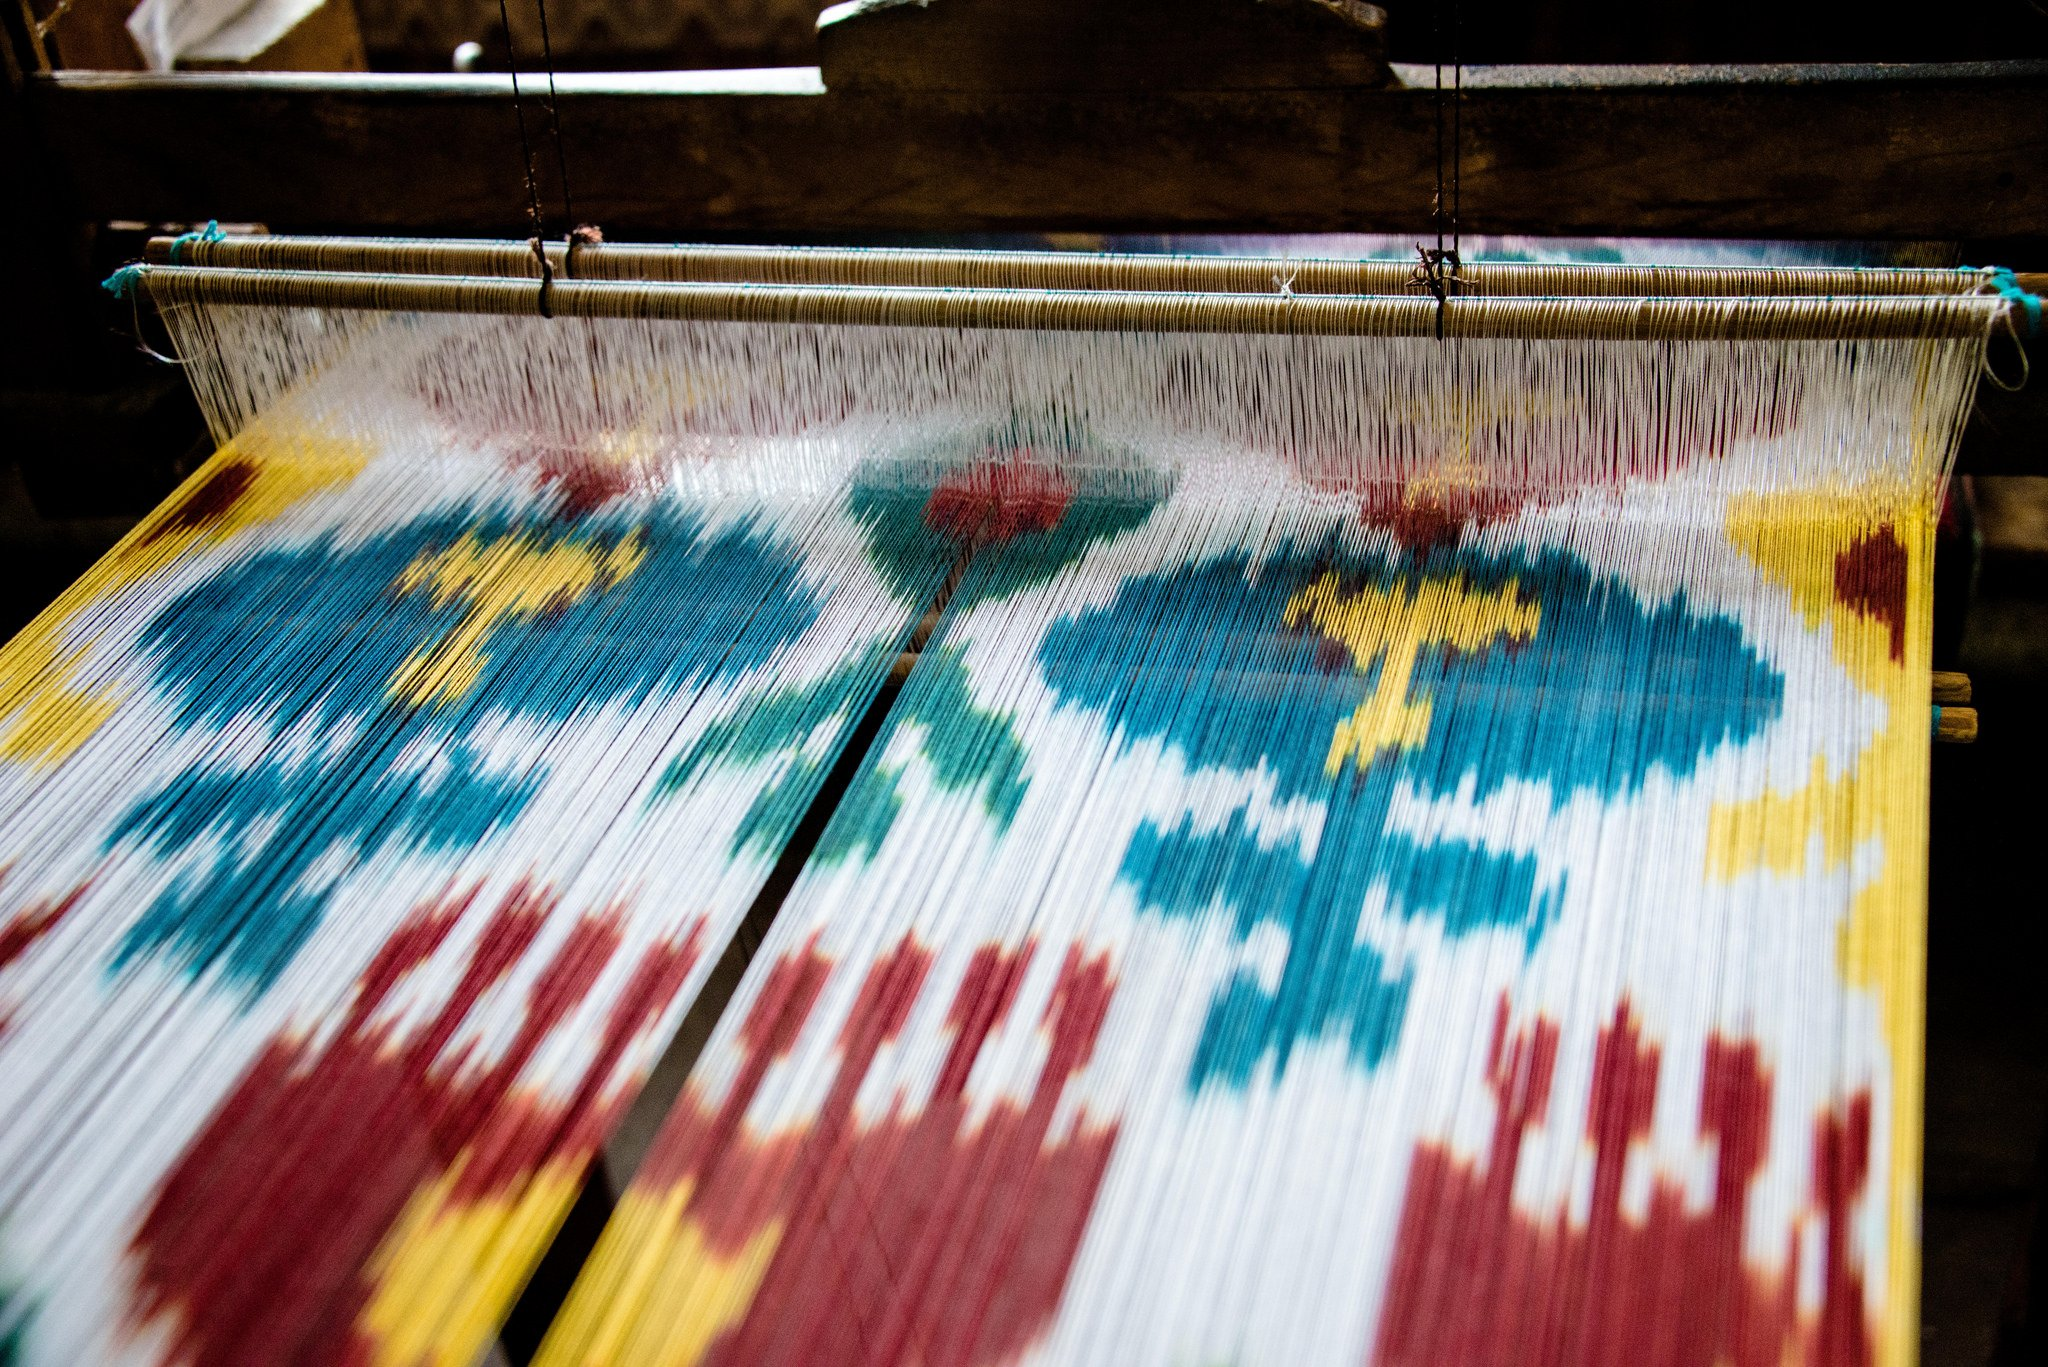 Ikat production. Image: 2008+ under a CC licence